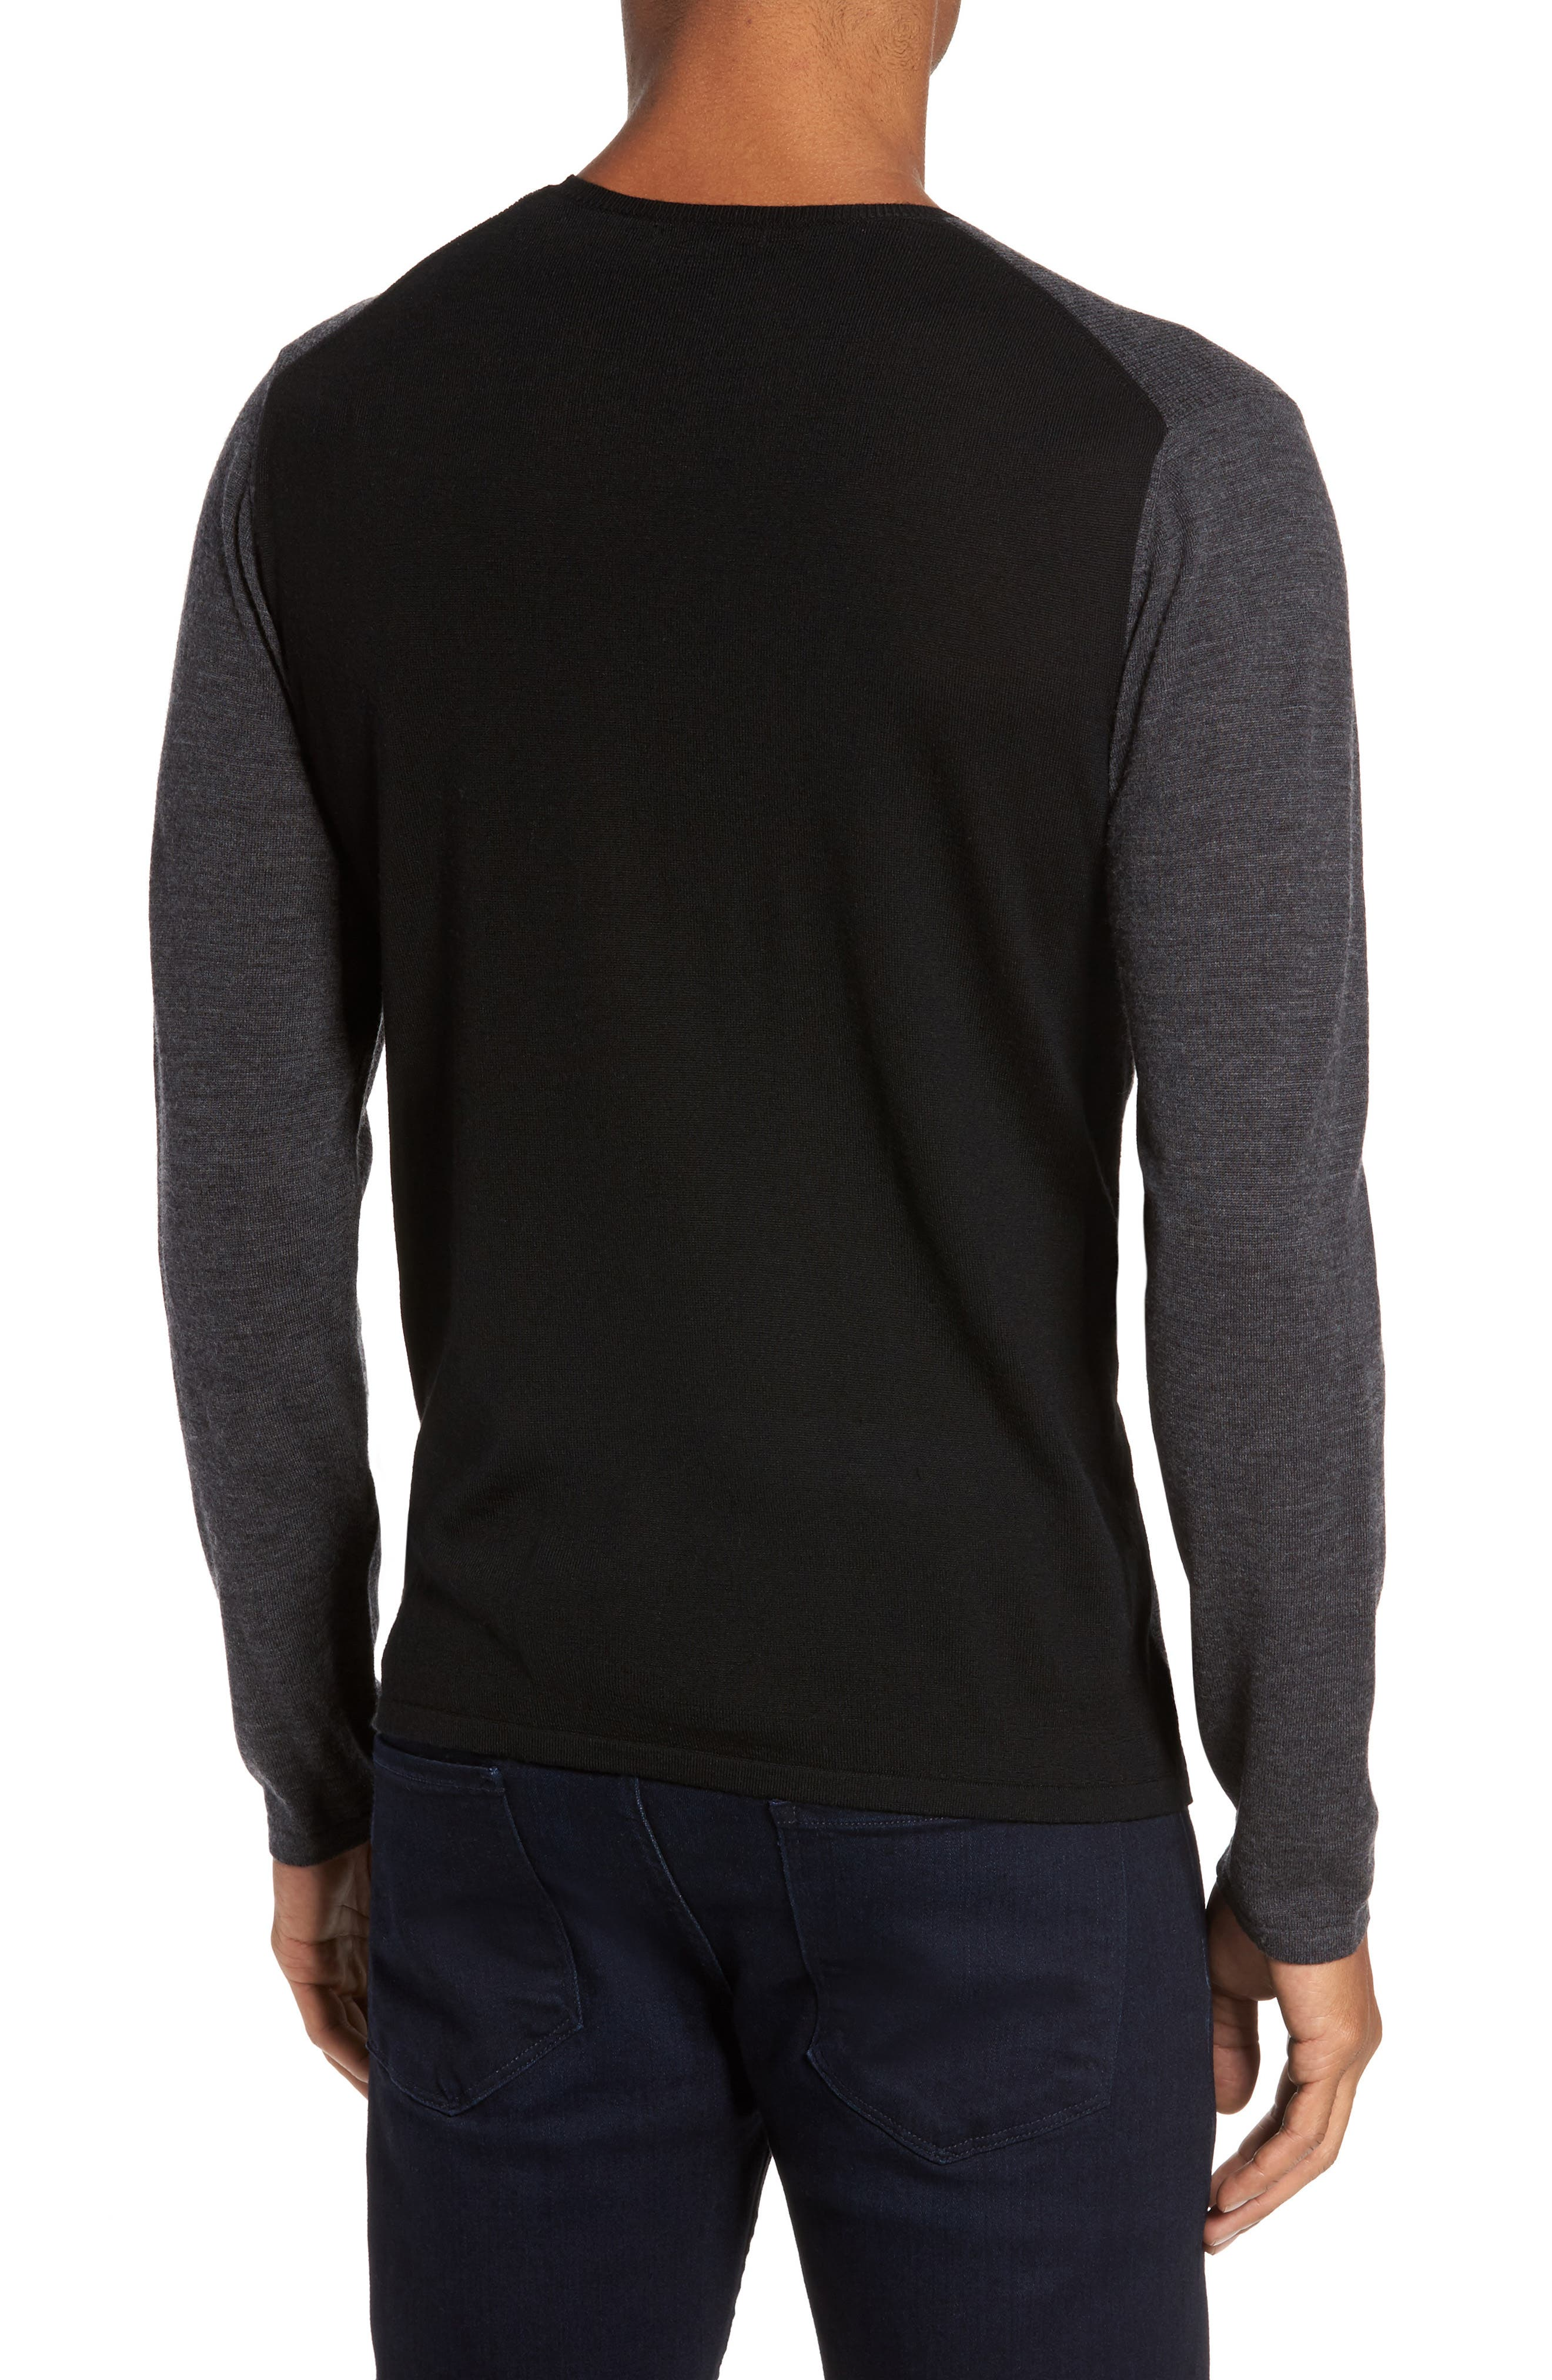 Huxley Merino Sweater,                             Alternate thumbnail 2, color,                             021